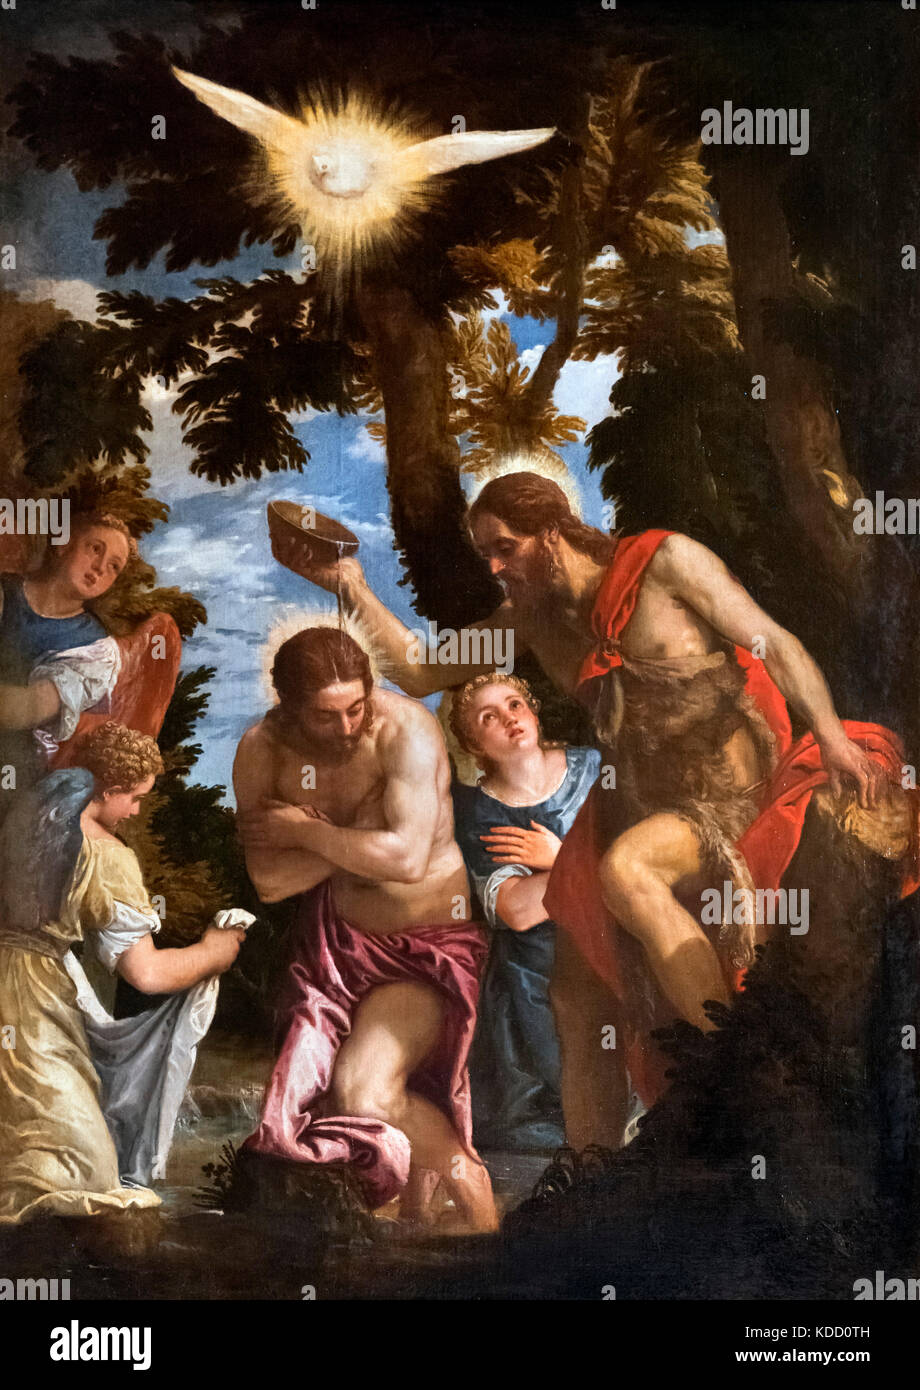 The Baptism of Christ by Paulo Veronese (1528-1588), oil on canvas